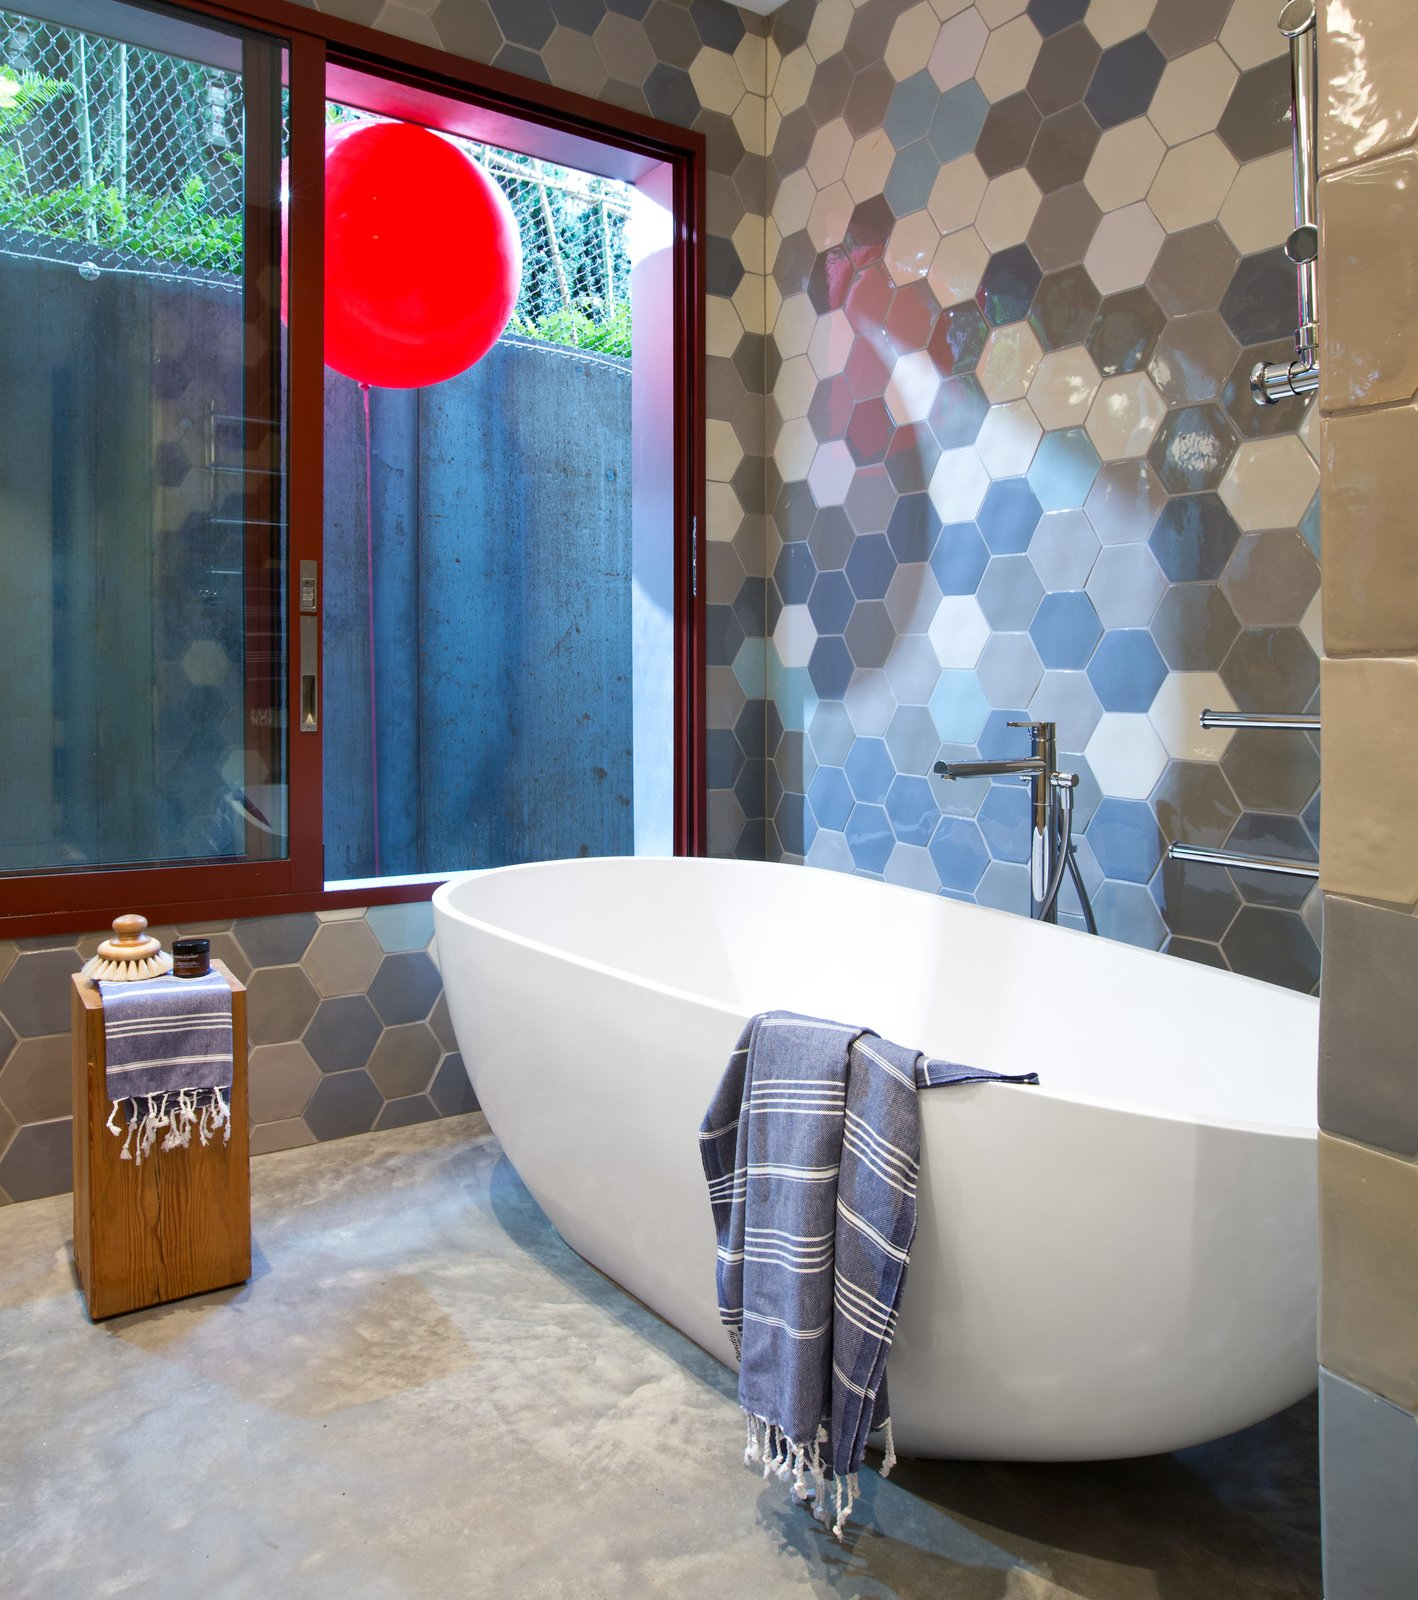 Magnificent Maax Sa9592 02 Elaboration - Bathtub Ideas - dilata.info